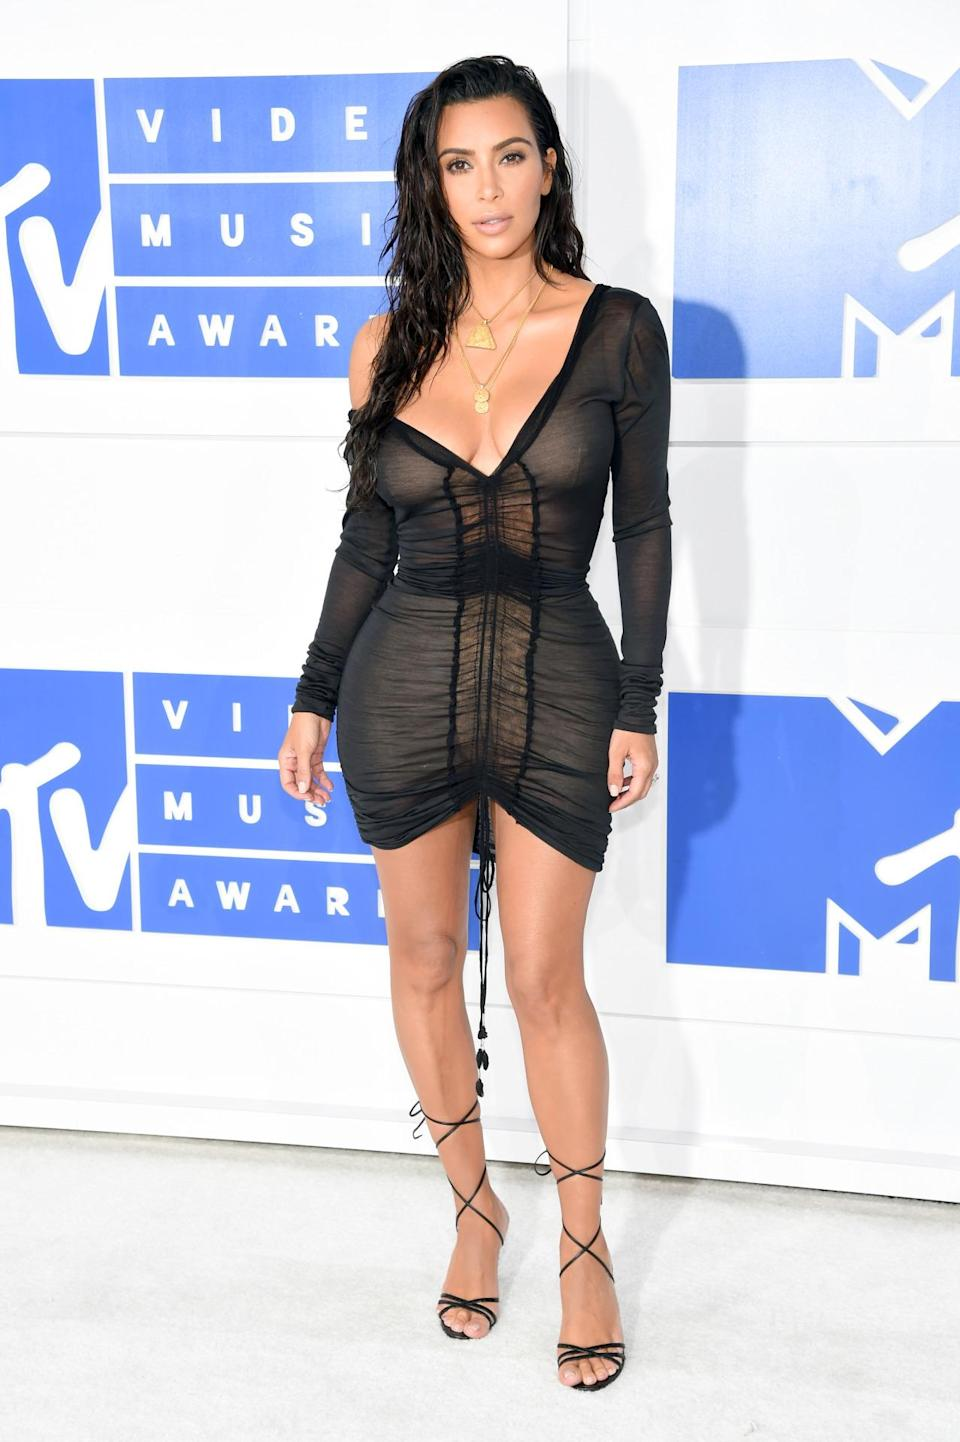 """<p>Kim Kardashian just couldn't decide what to wear, so she asked her Twitter followers to help. She asked 47.6 million fans whether she should go with a """"casual chill look"""" or a """"dressy sexy look,"""" and 52 percent voted for the latter. With that vote of confidence, the reality star selected a cotton minidress with ruching detail in the front and one shoulder purposefully pulled down. She wore lace-up heels and styled her hair in a fresh-out-of-the-shower kind of way. (<i>Photo: Getty Images)</i><br></p>"""